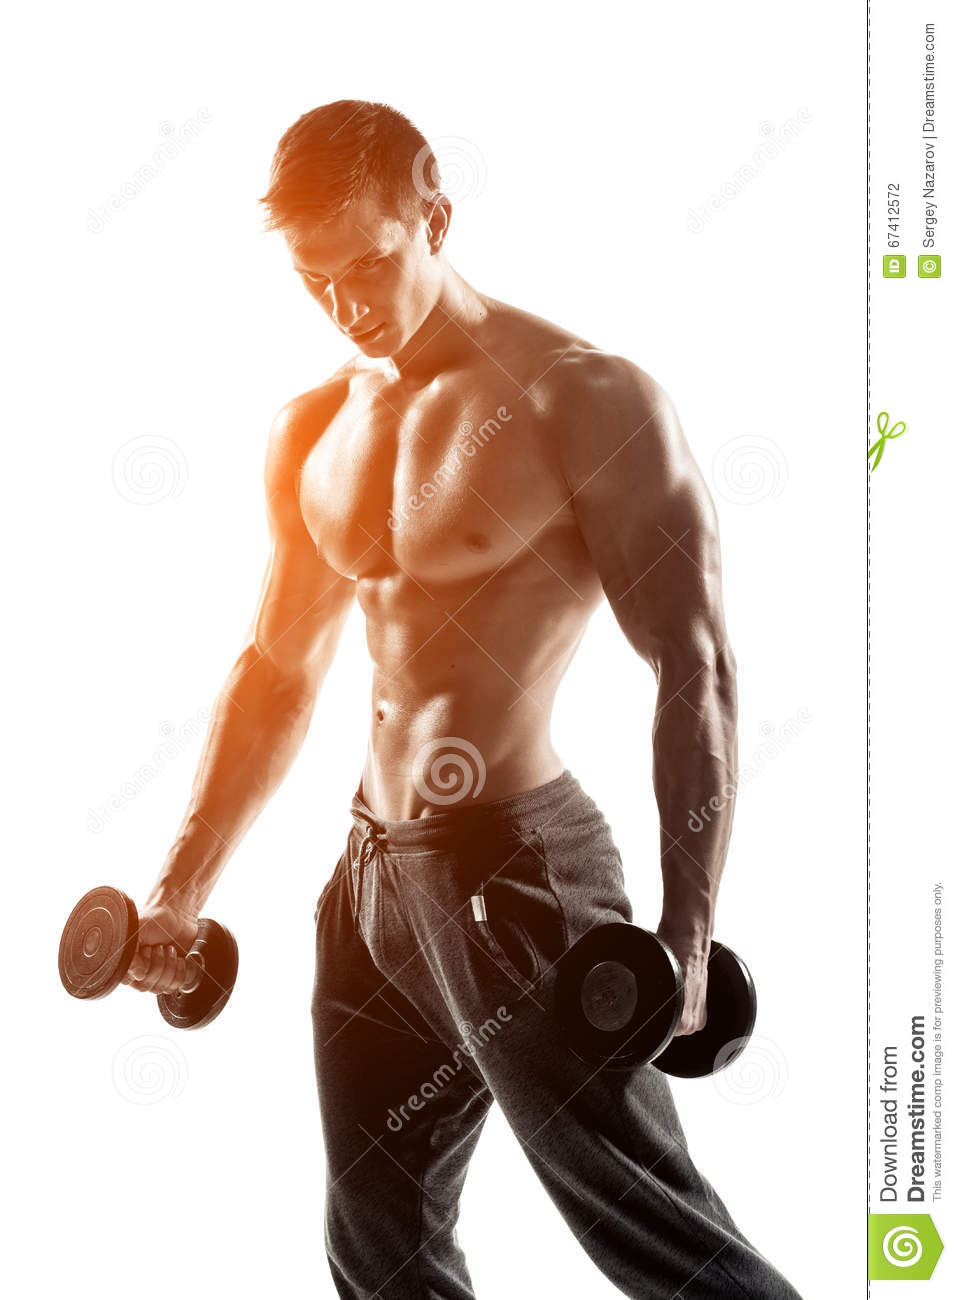 Strong Athletic Man Showing Muscular Body With Dumbbells